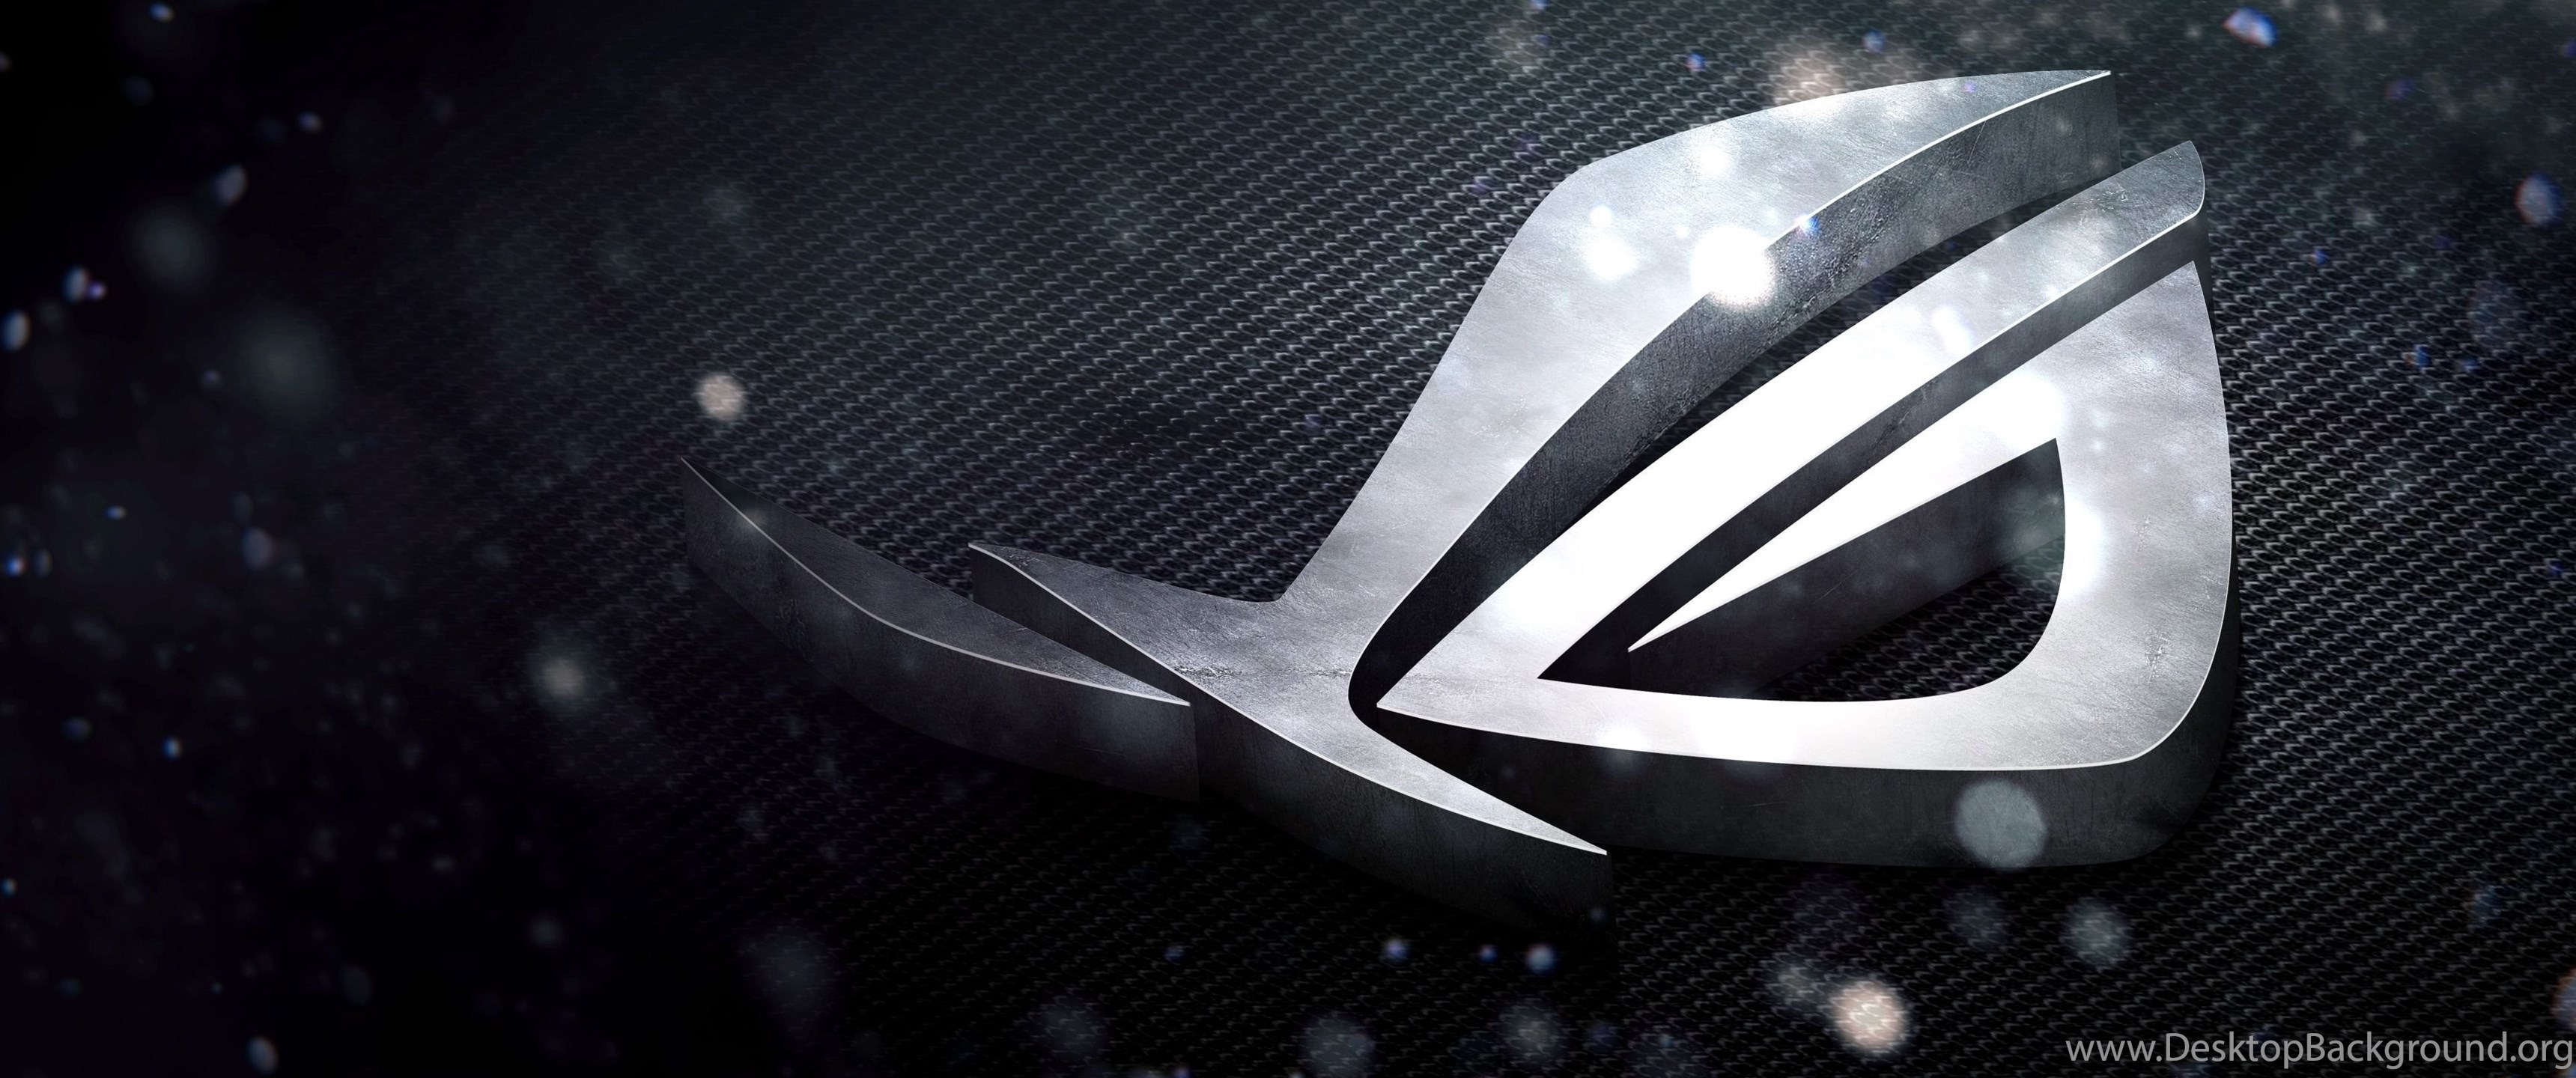 Asus Wallpaper 3440x1440: Awesome 4K ROG Wallpapers Republic Of Gamers Republic Of